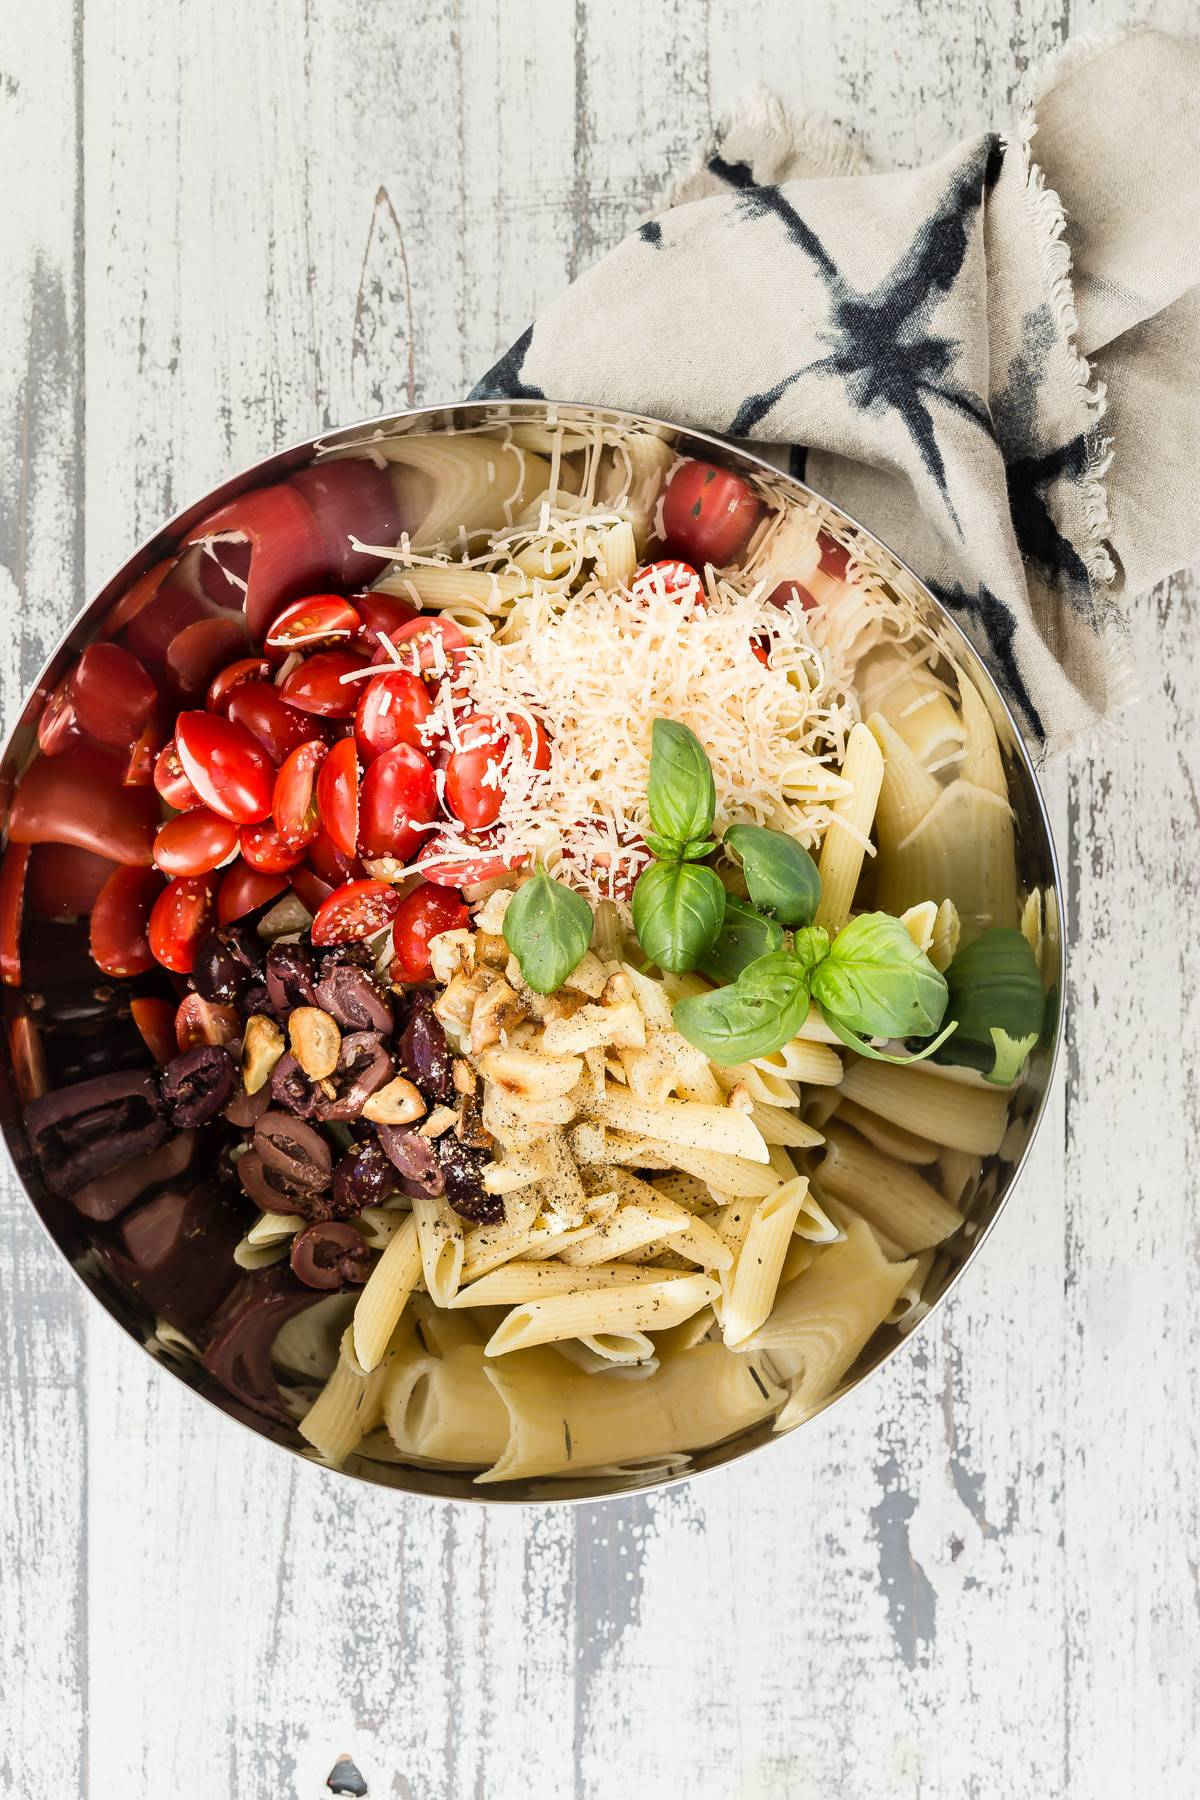 Pomodoro Pasta salad ingredients in a bowl